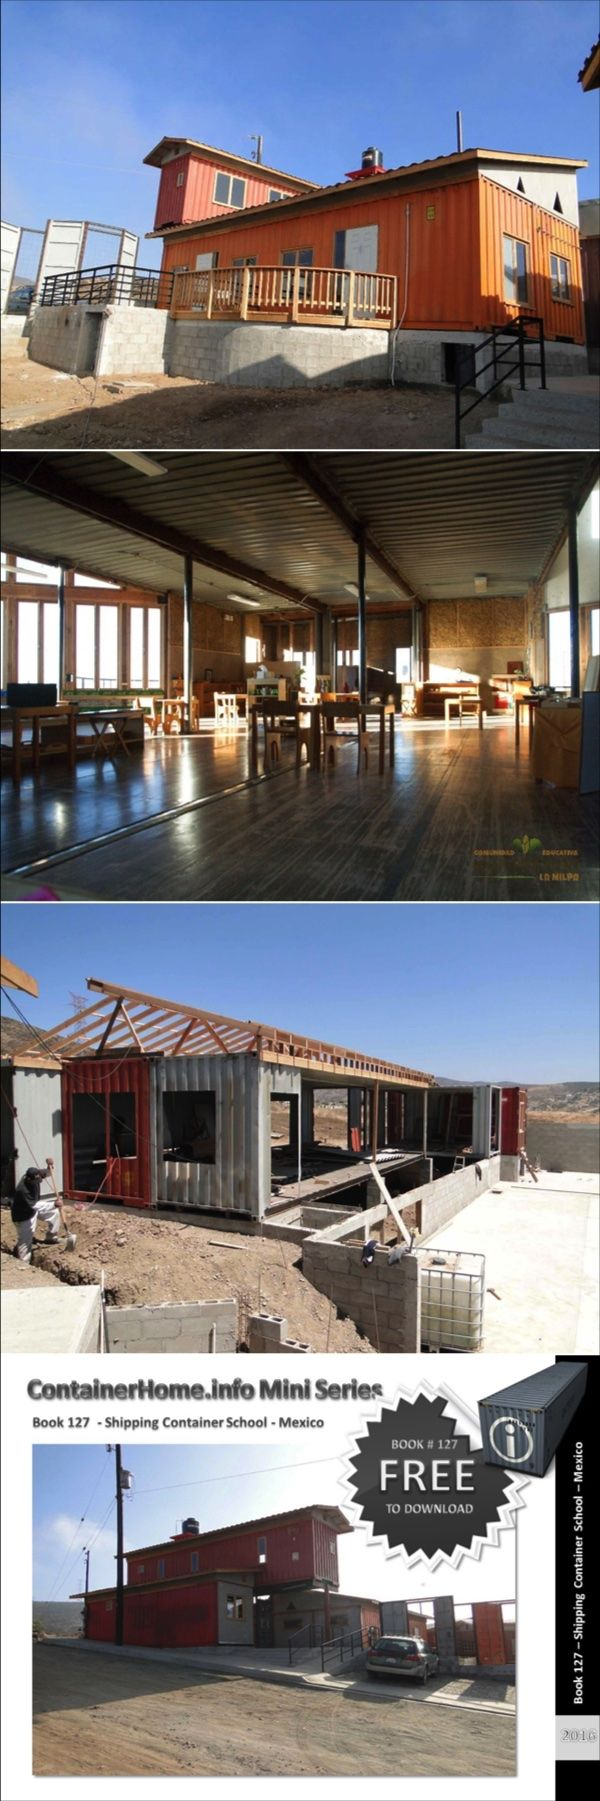 container home book 127 u2013 shipping container